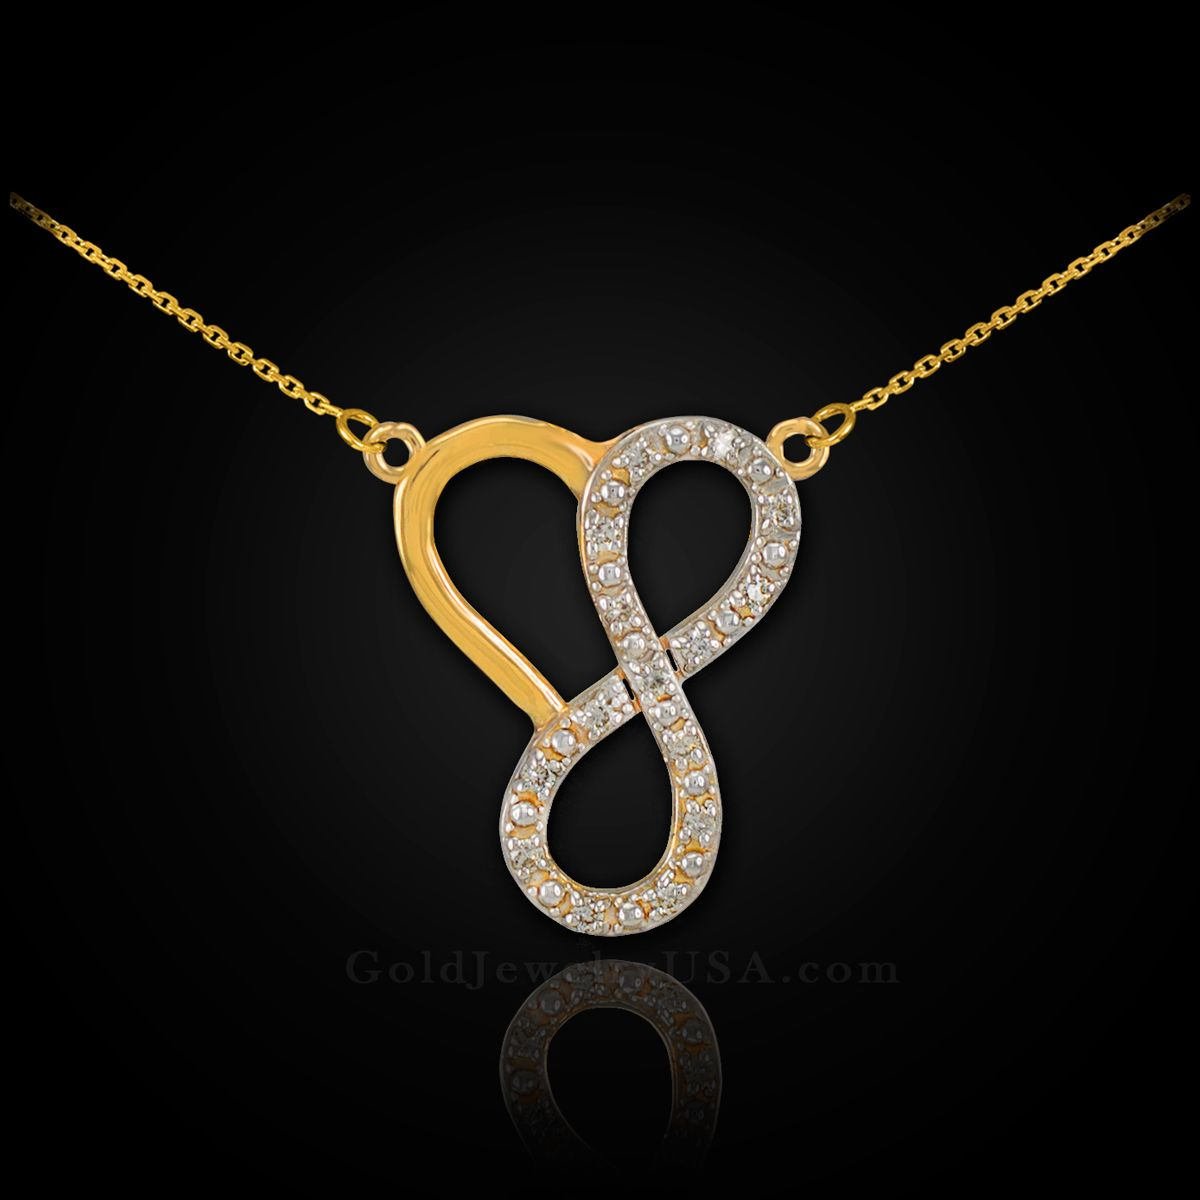 14K Yellow Gold Polished Infinity Heart Pendant